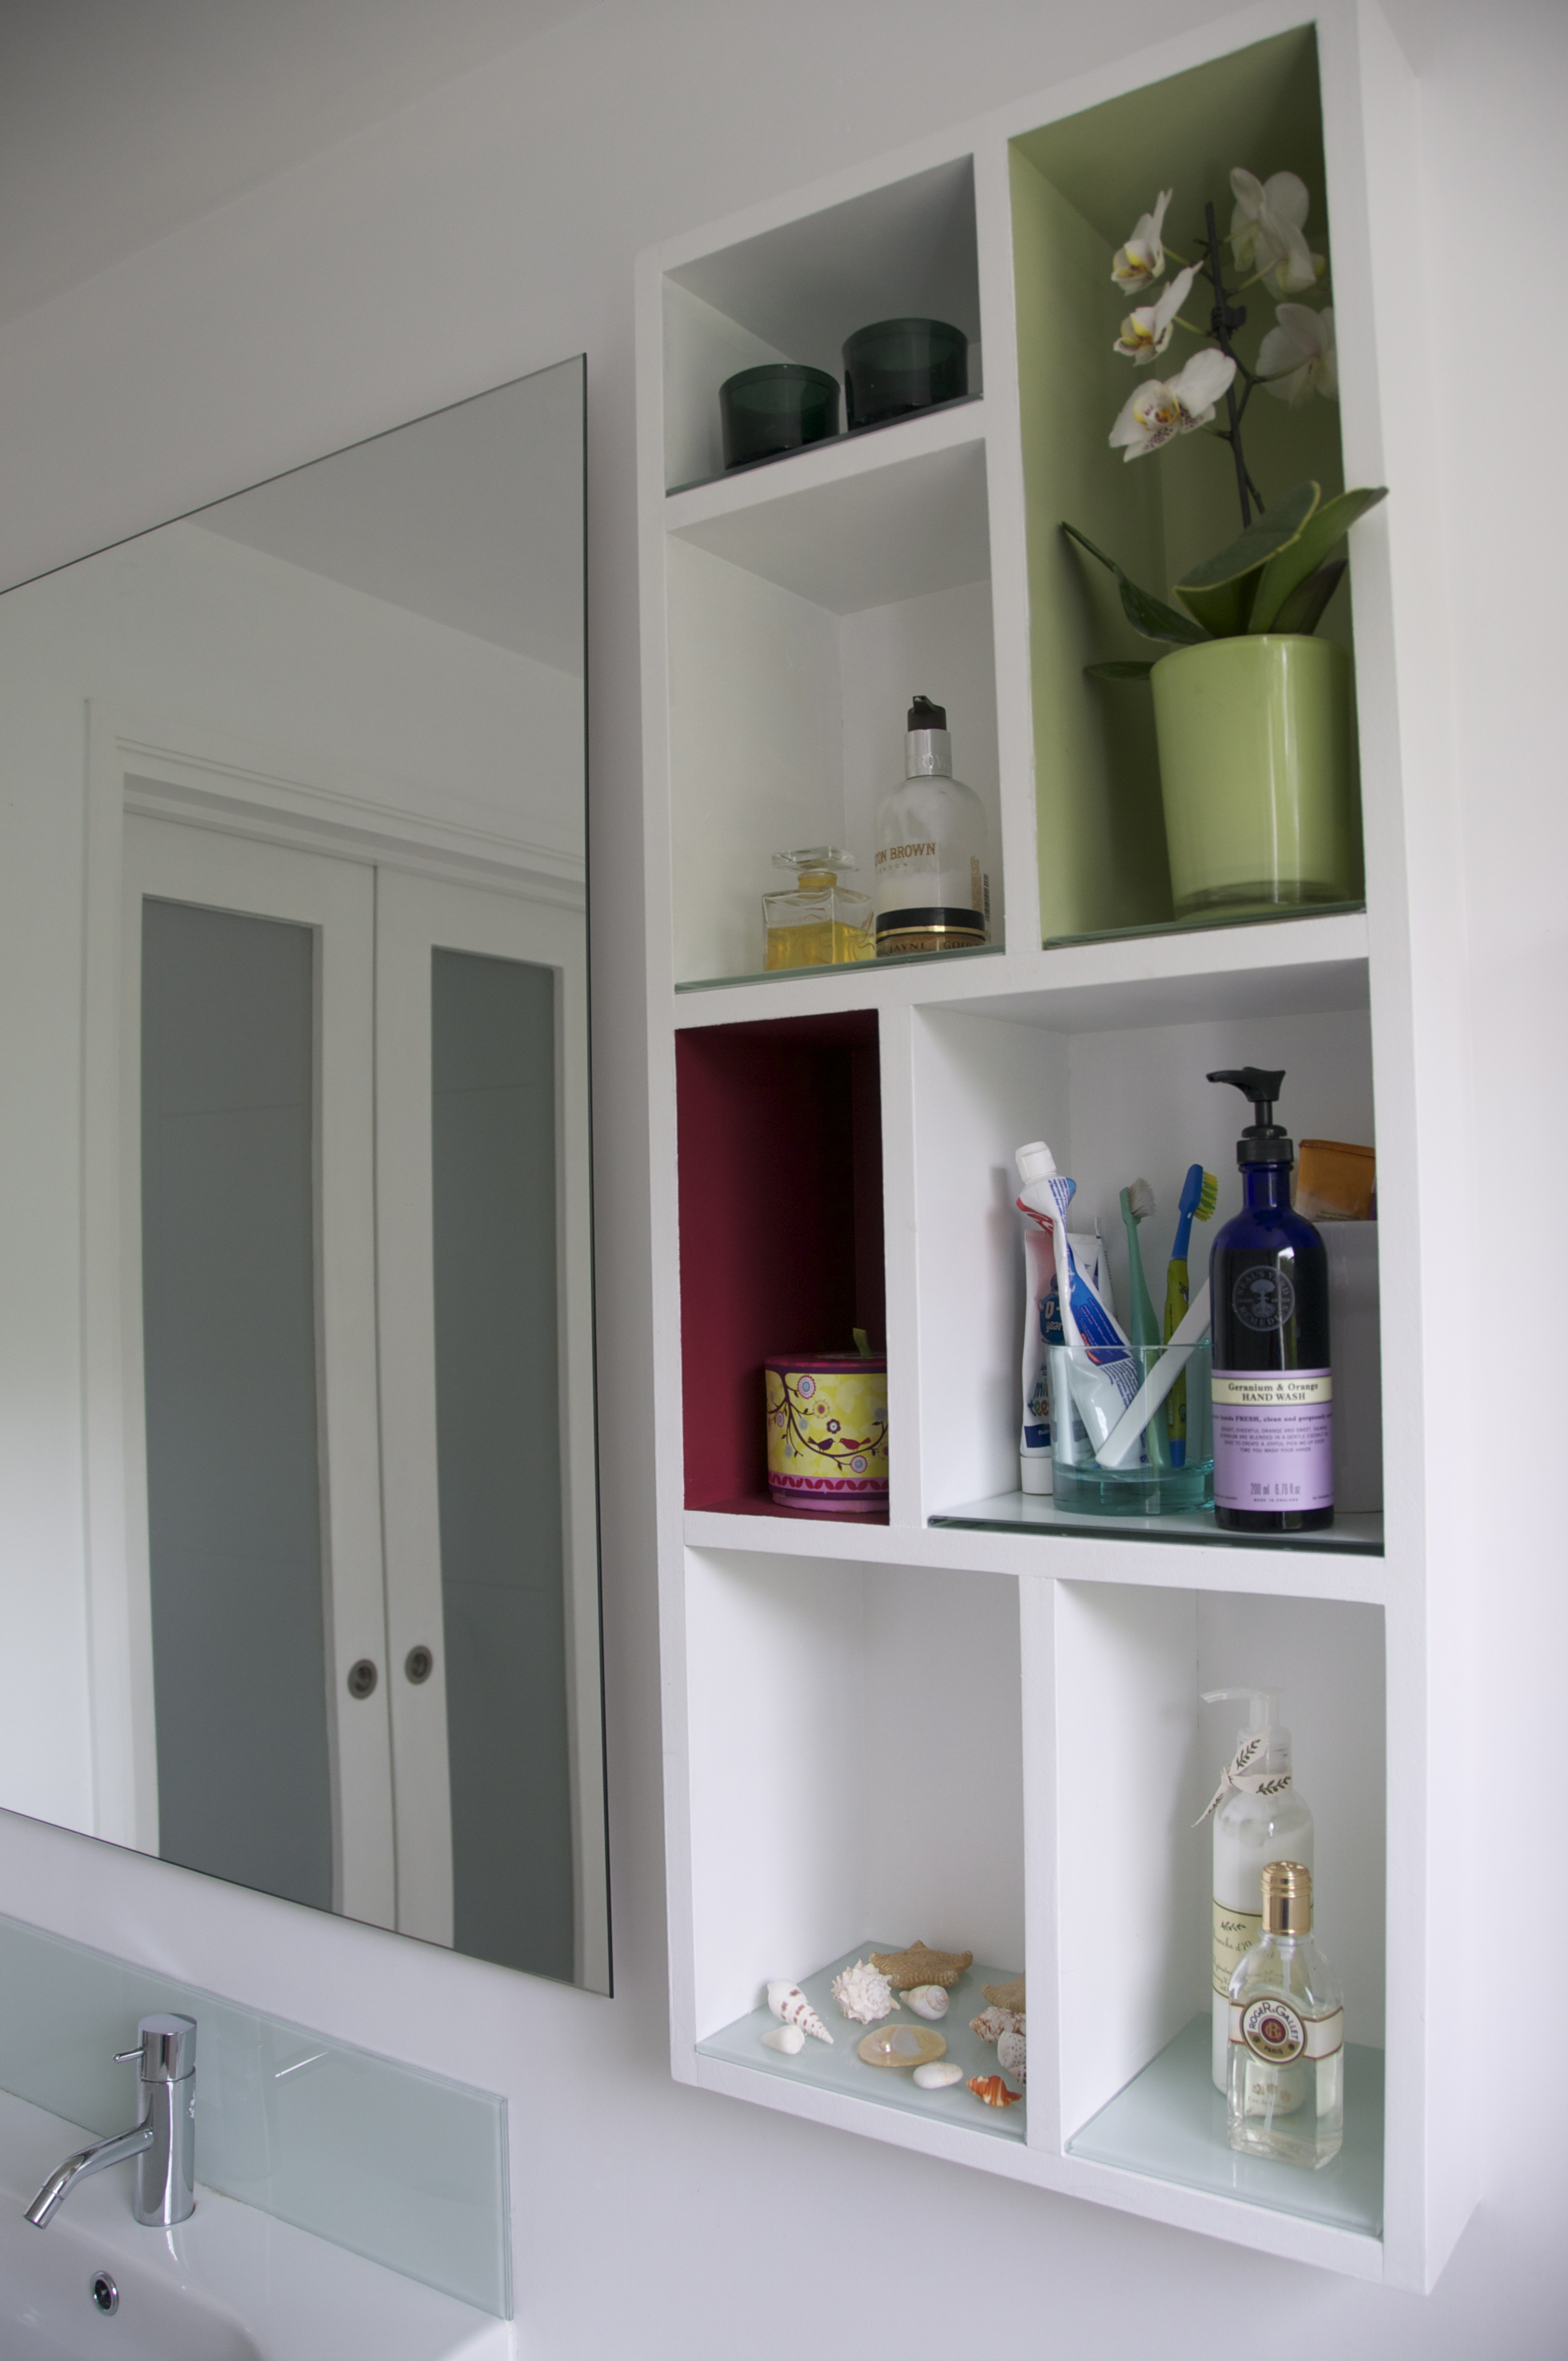 Lowes Medicine Cabinets With mirror on white wall plus white sink and silver faucet